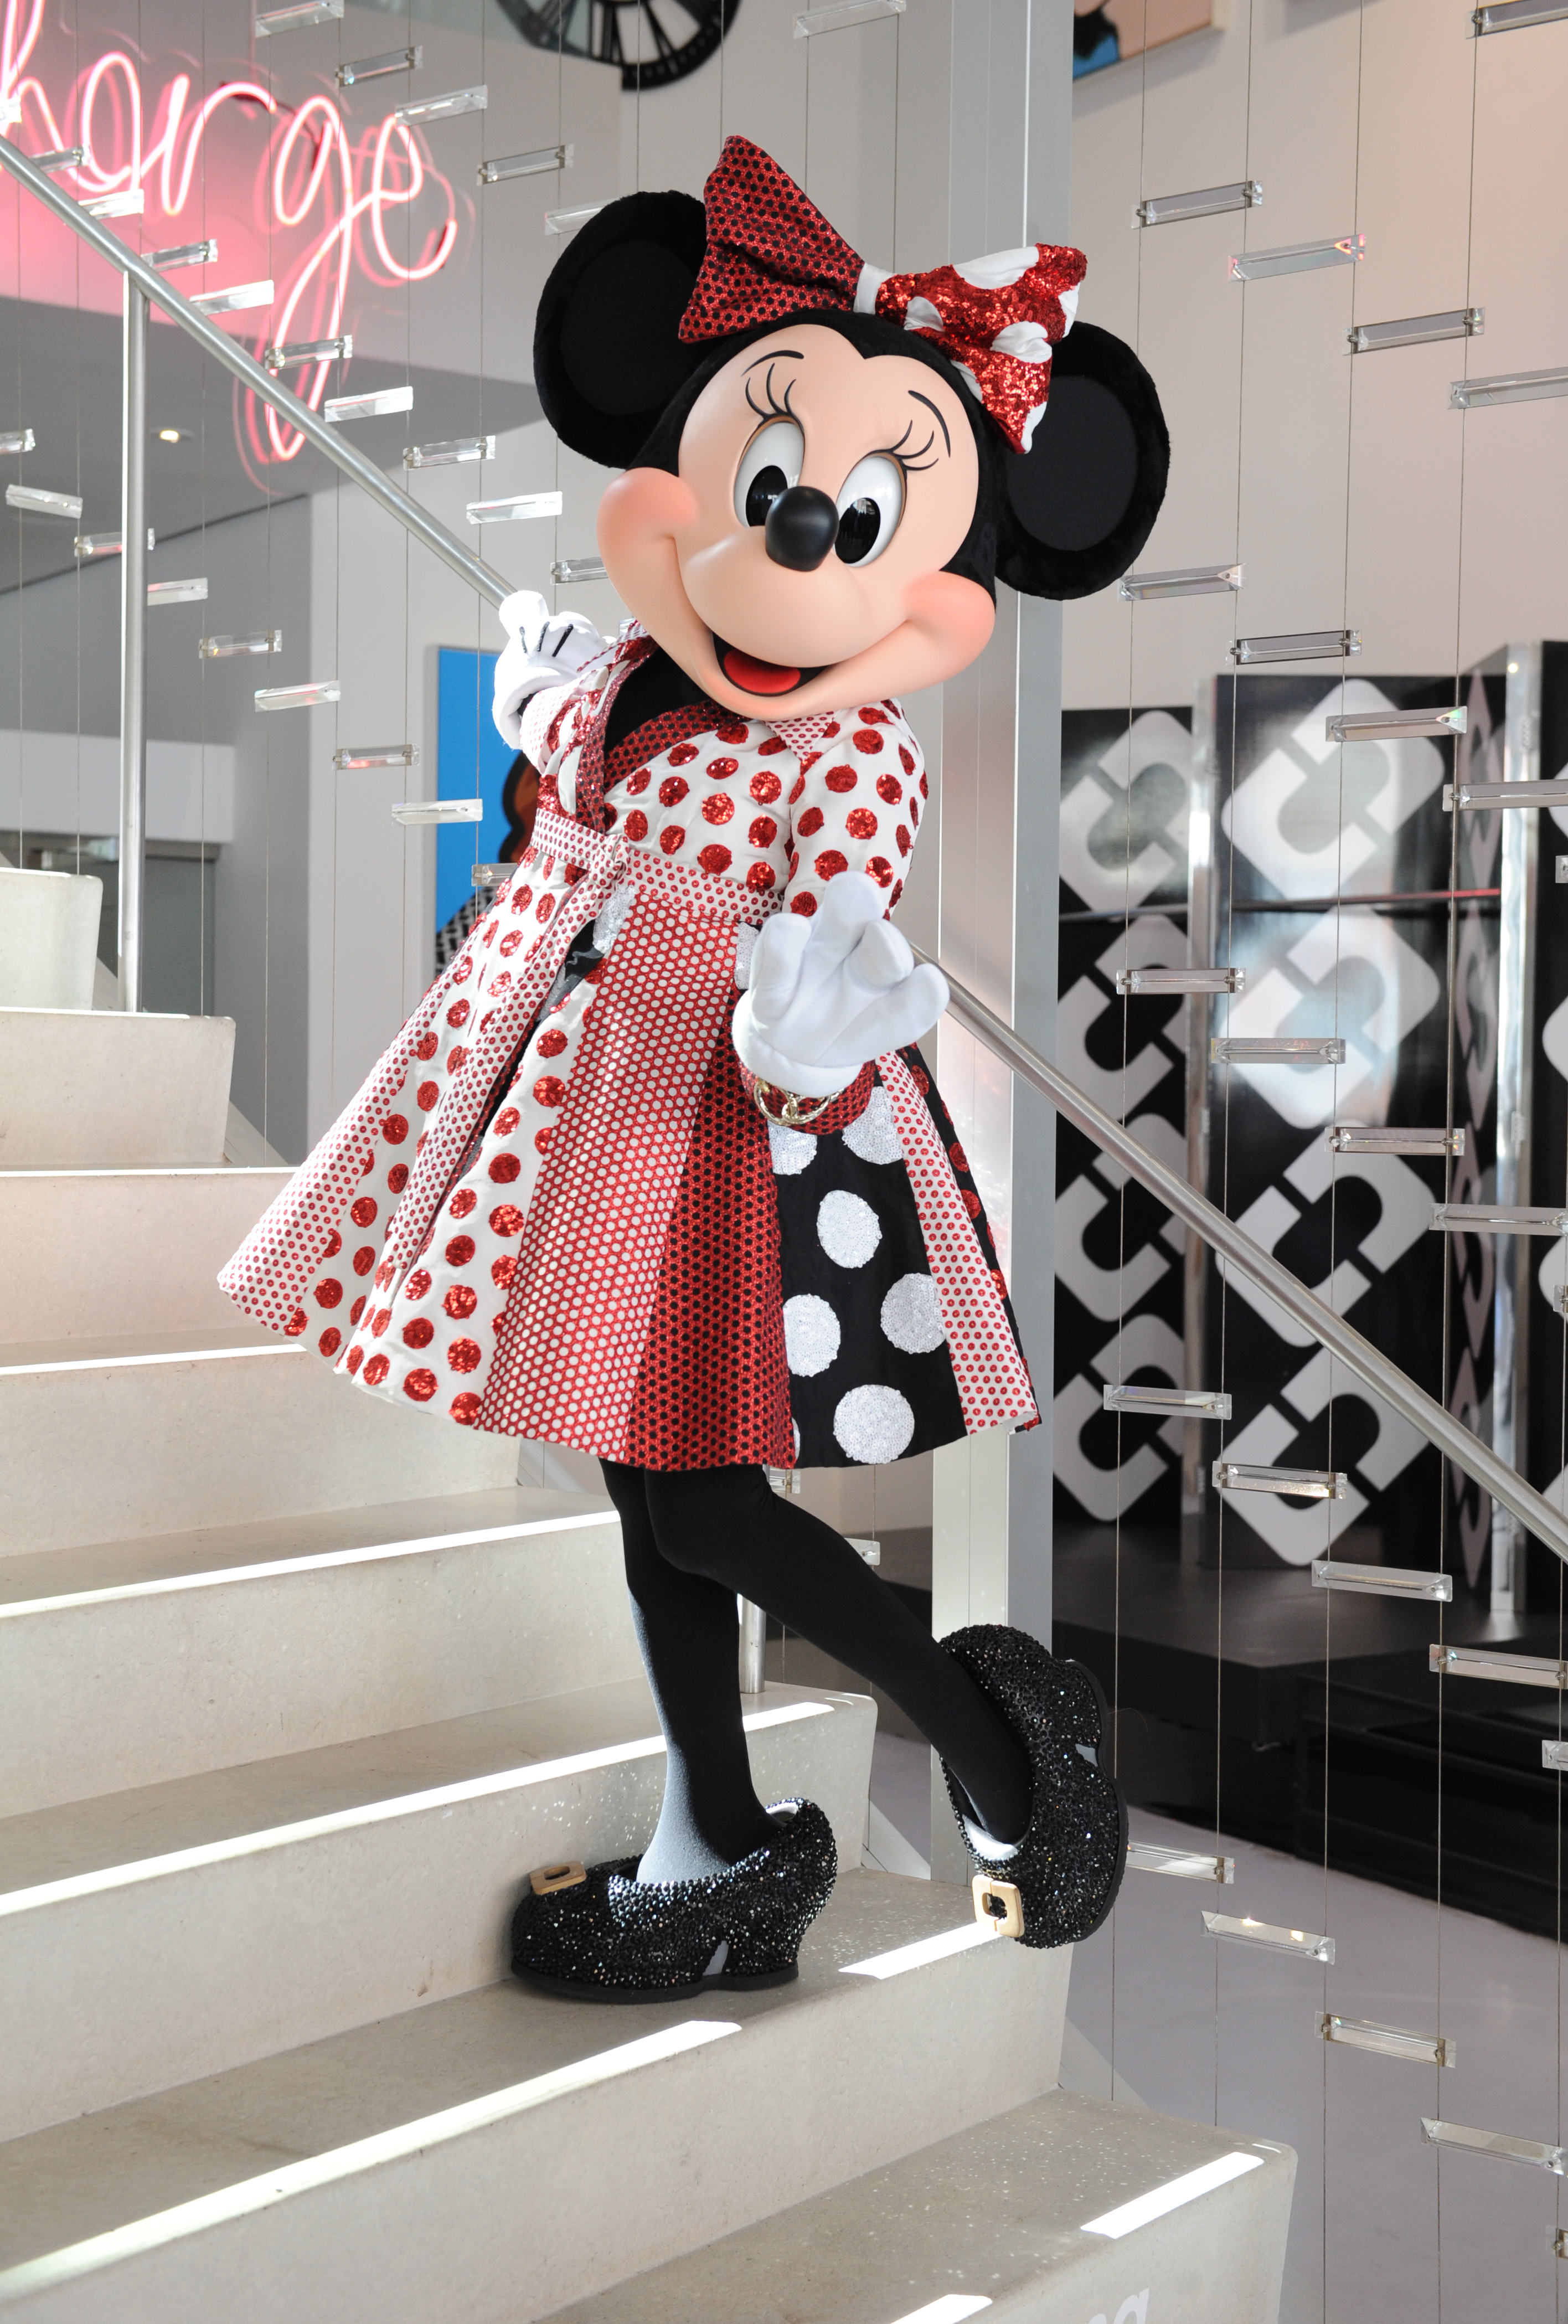 NEW YORK, NY - OCTOBER 17: Minnie Mouse in custom Diane von Furstenberg wrap dress at the Diane von Furstenberg studio on October 17, 2018 in New York City. (Photo by Craig Barritt/Getty Images for The Walt Disney Company)